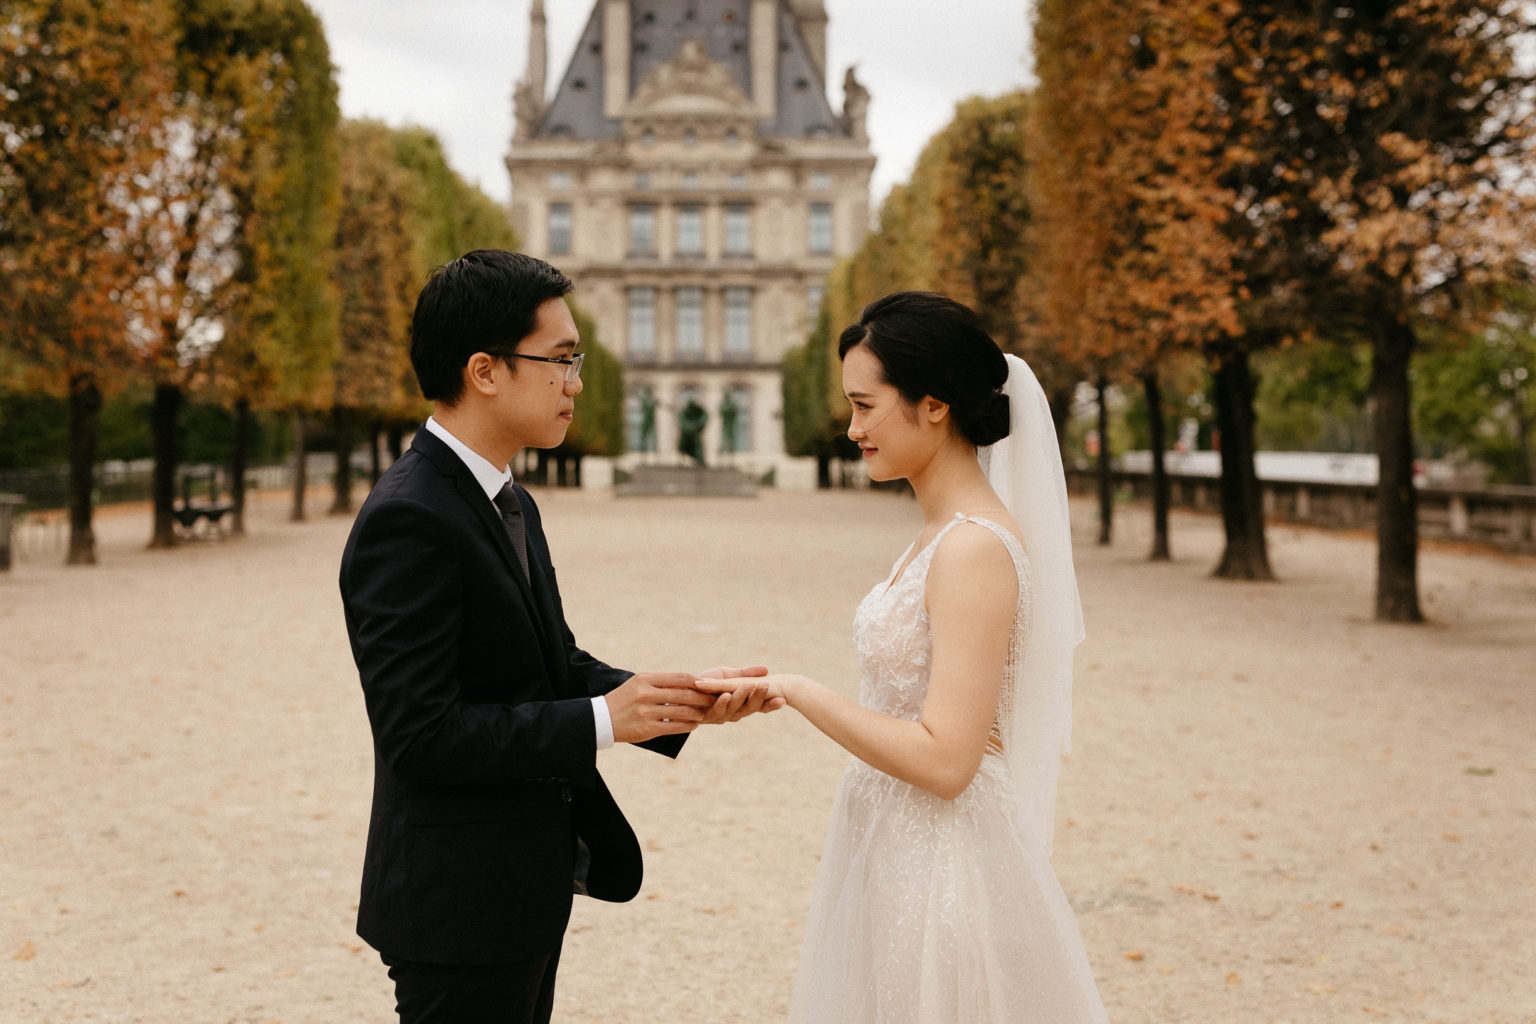 elopement wedding jardin des tuileries